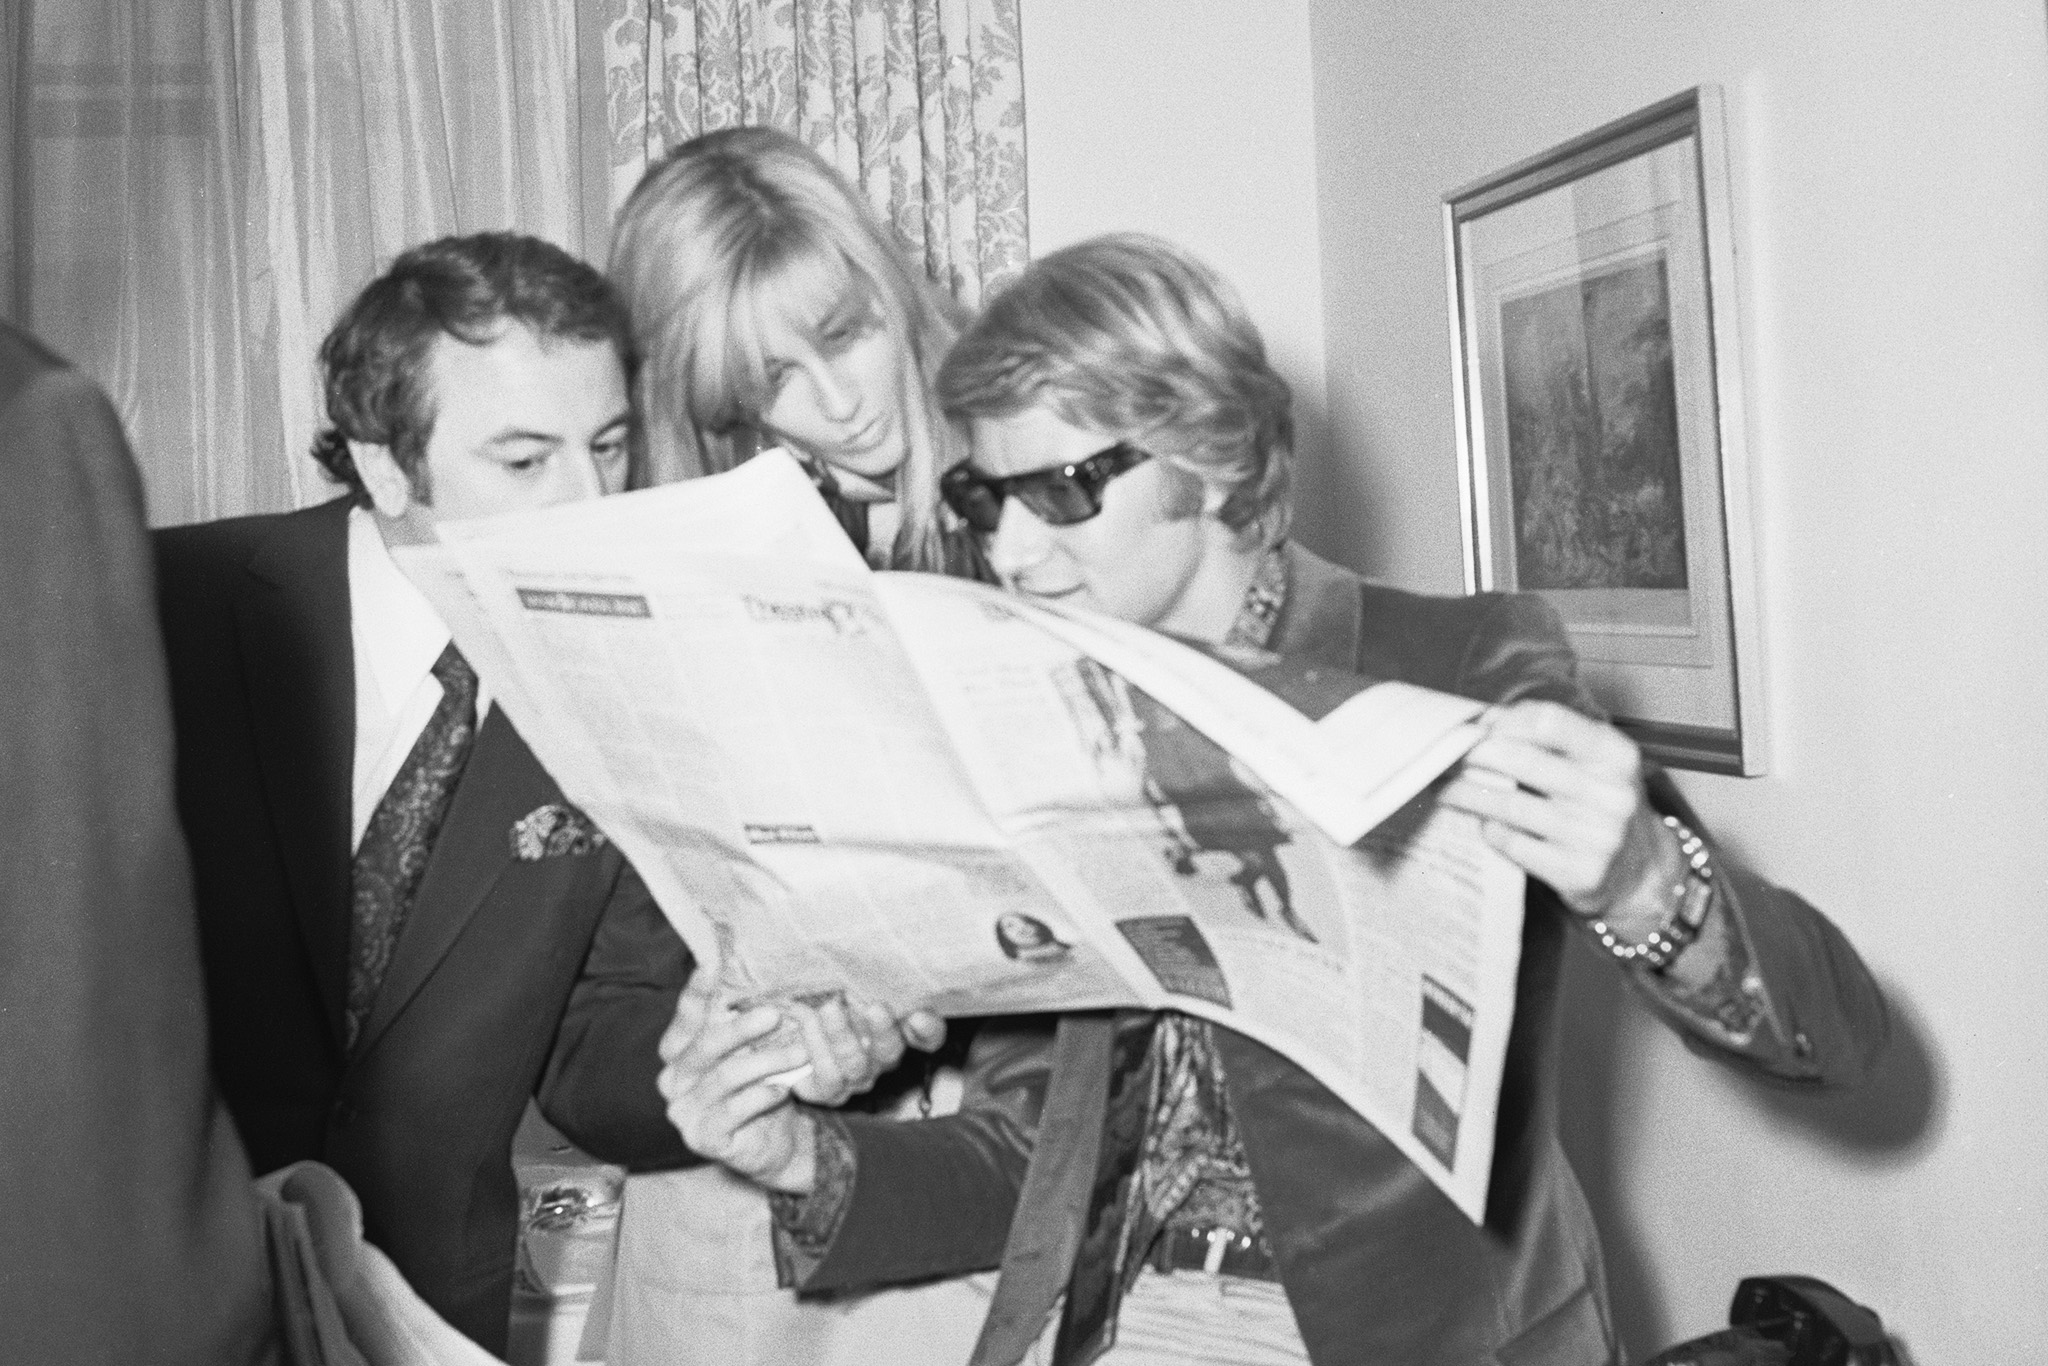 Yves Saint Laurent reading Women's Wear Daily with Pierre Berge and model Betty Catroux after arriving in New York prior to attending a party given by Andy Warhol at the downtown Factory location.